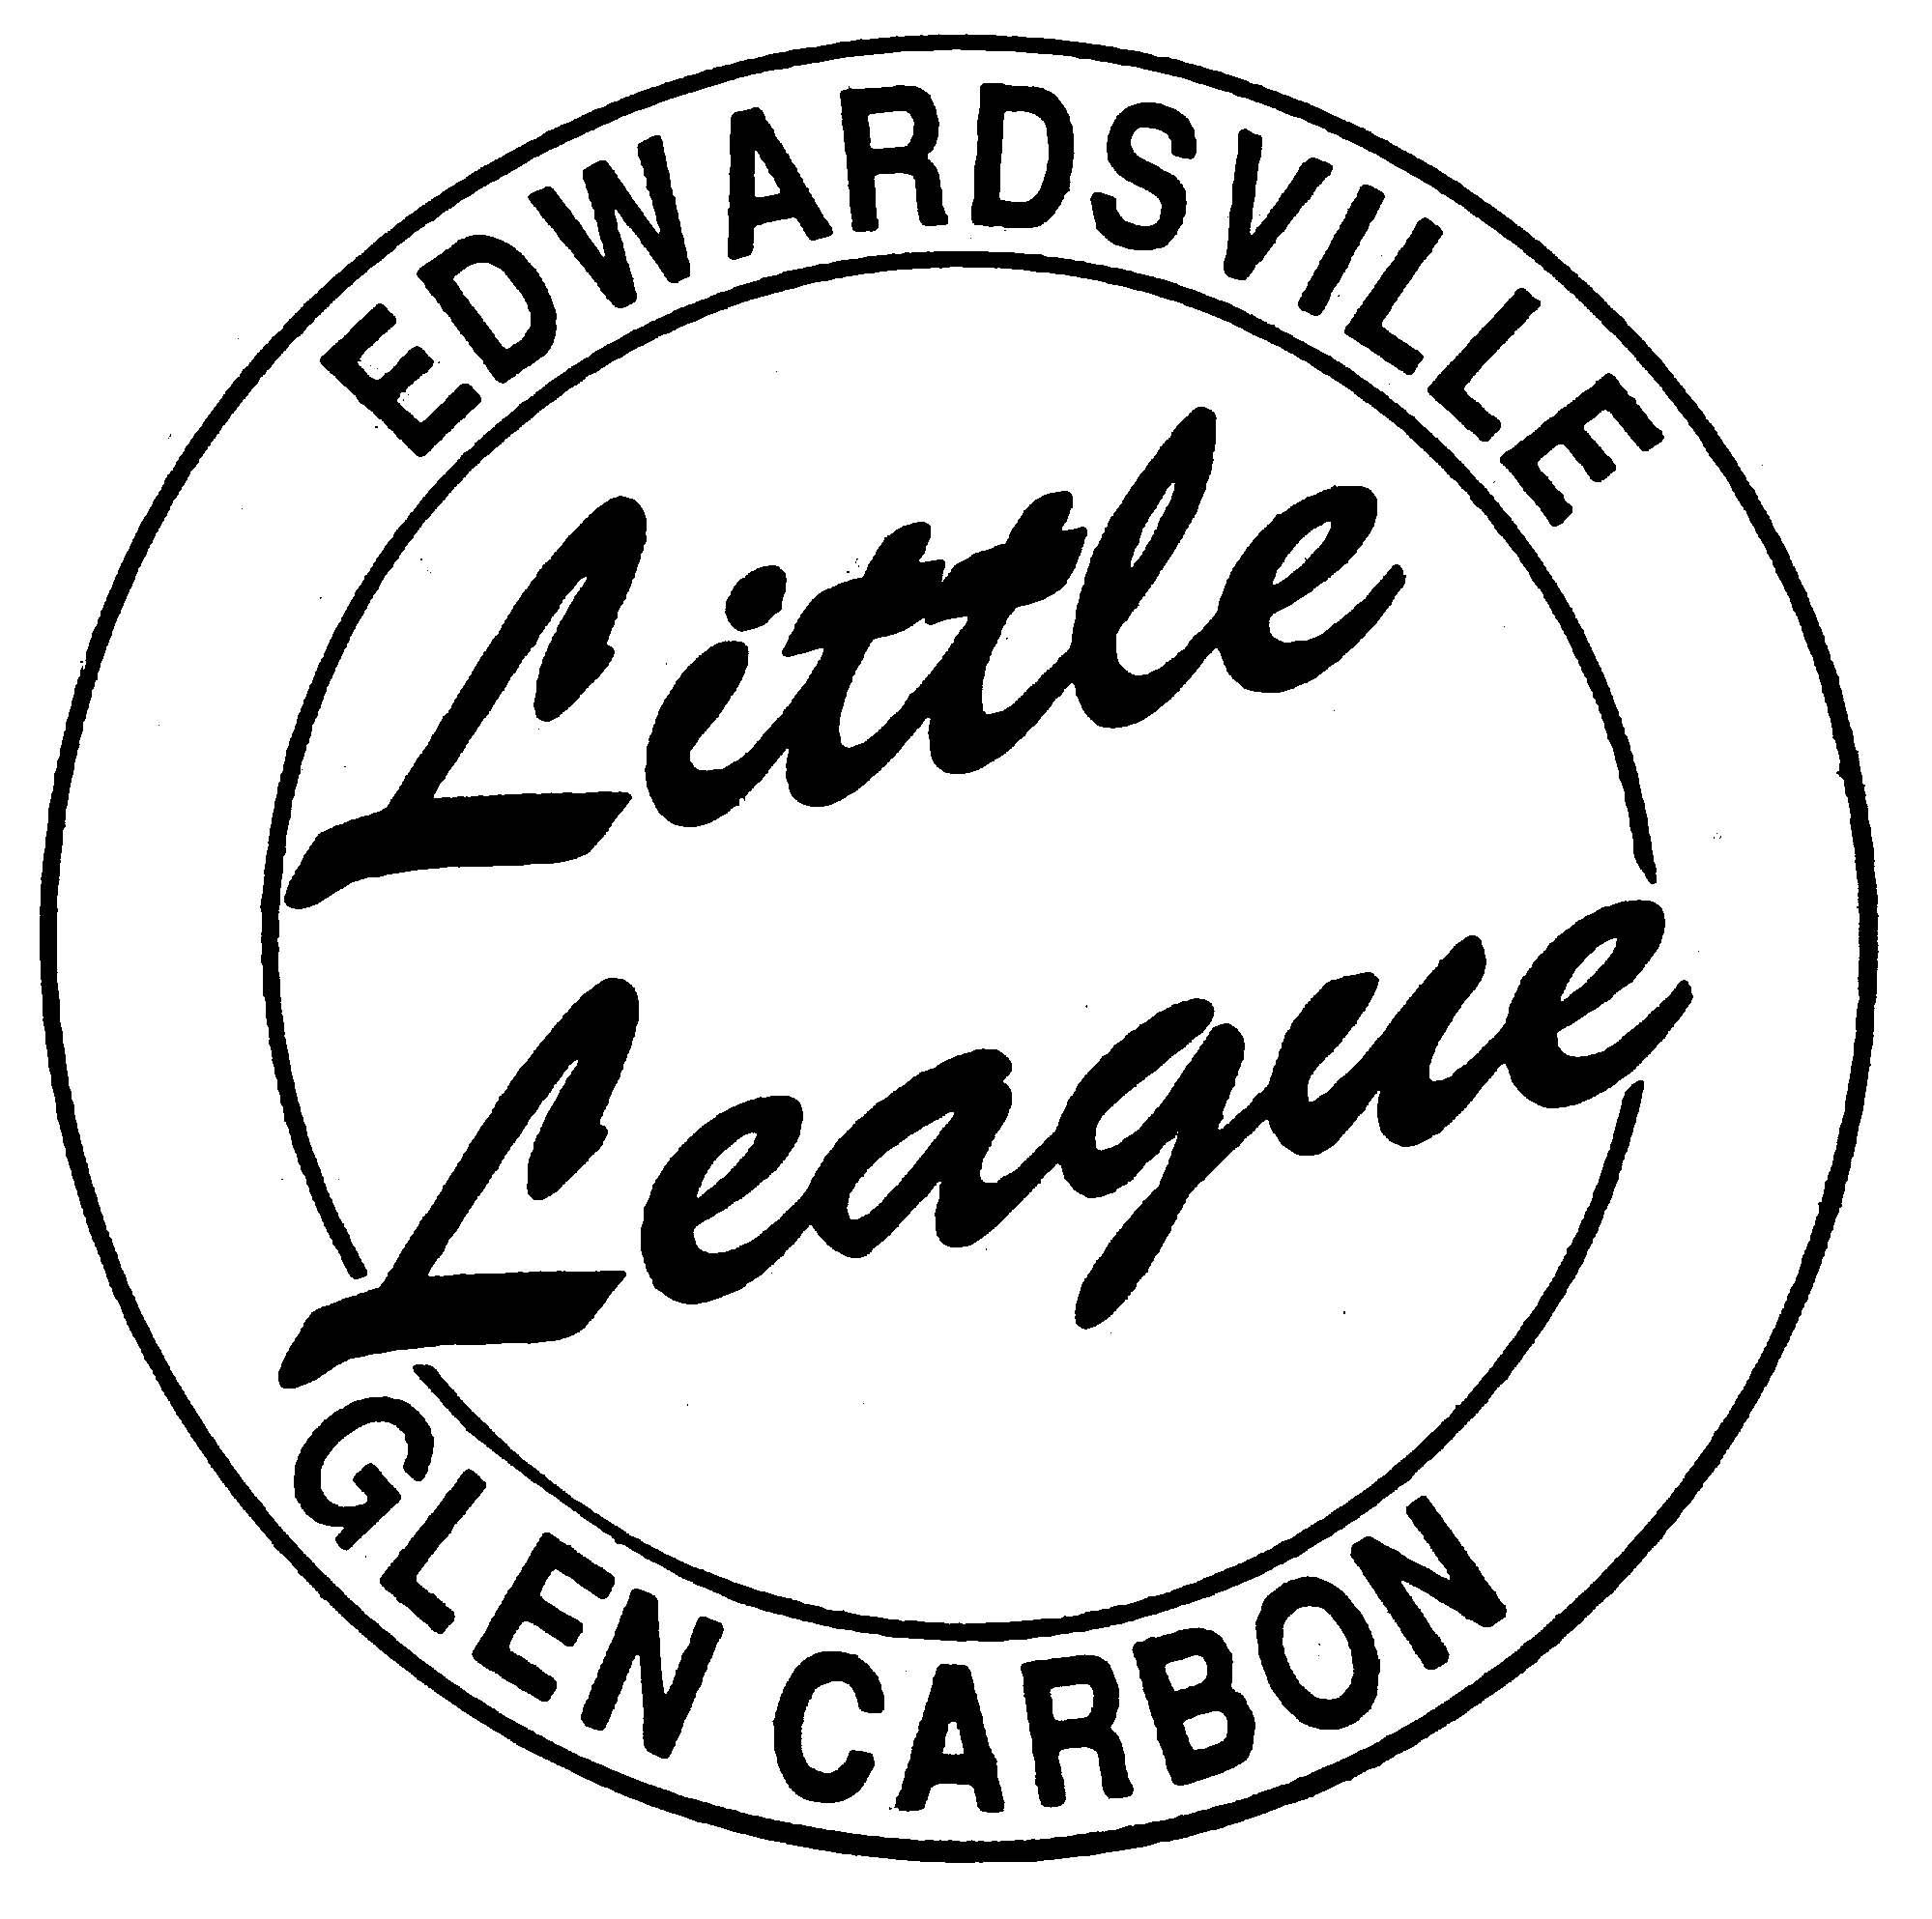 Edwardsville / Glen Carbon Little League Association